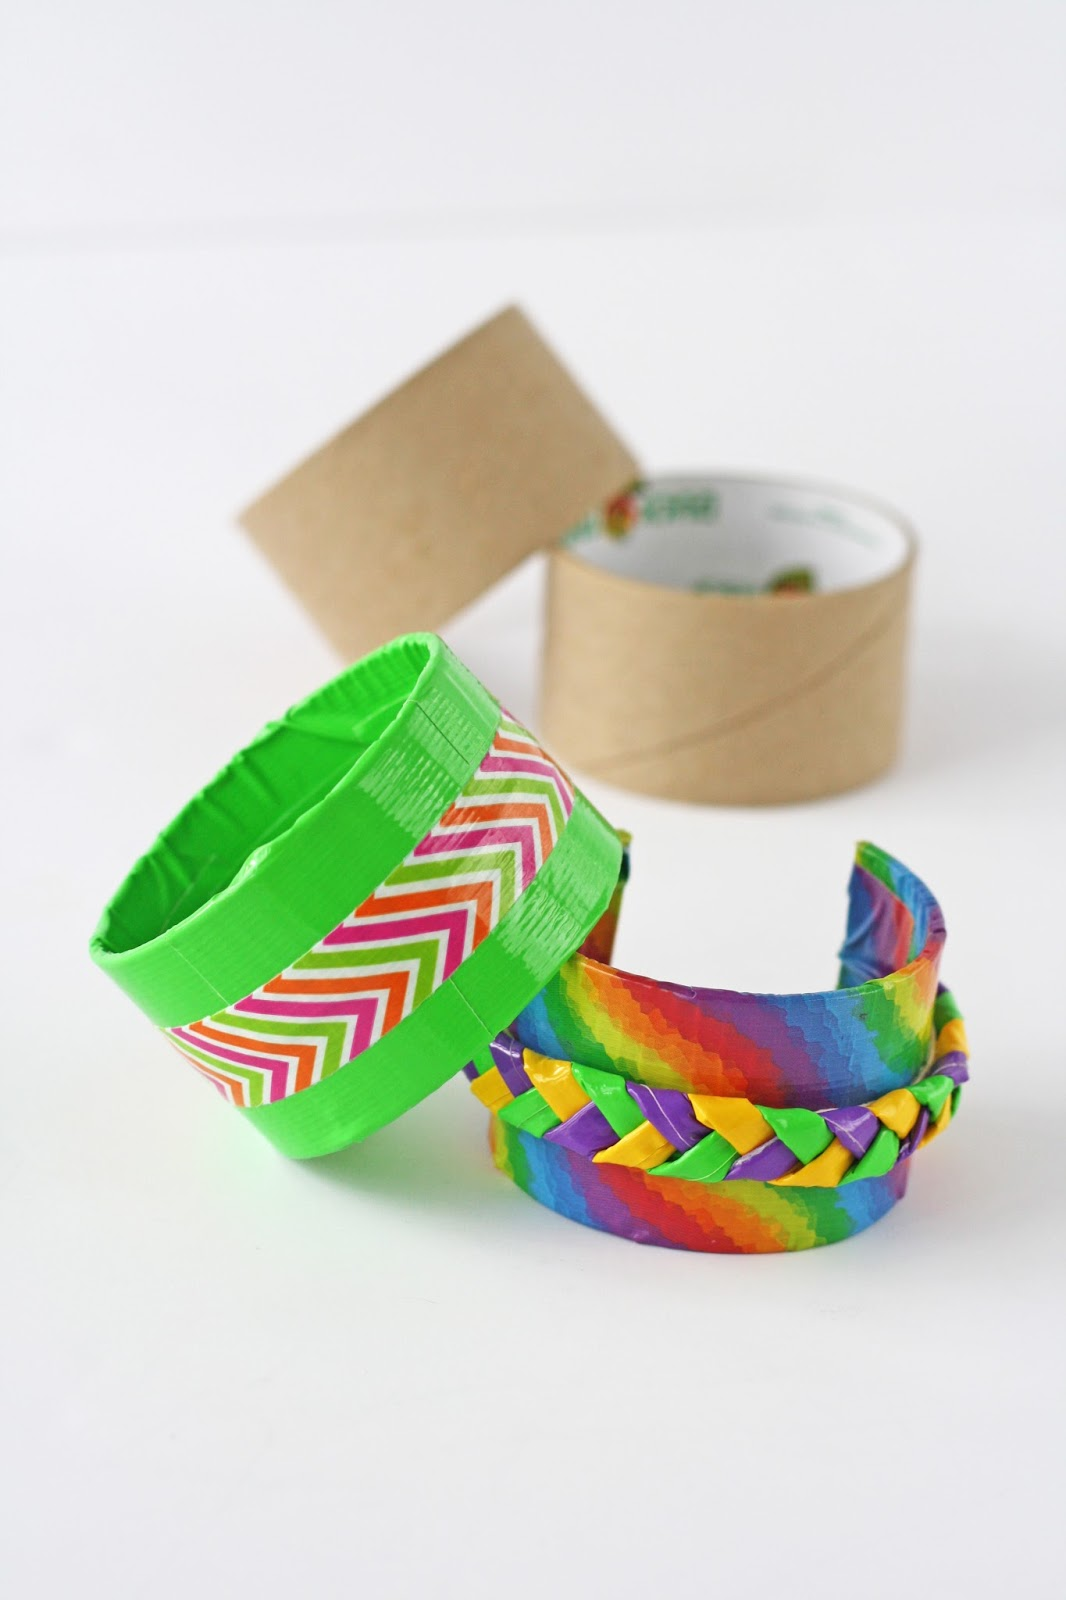 Bracelet made with tape roll and duct tape